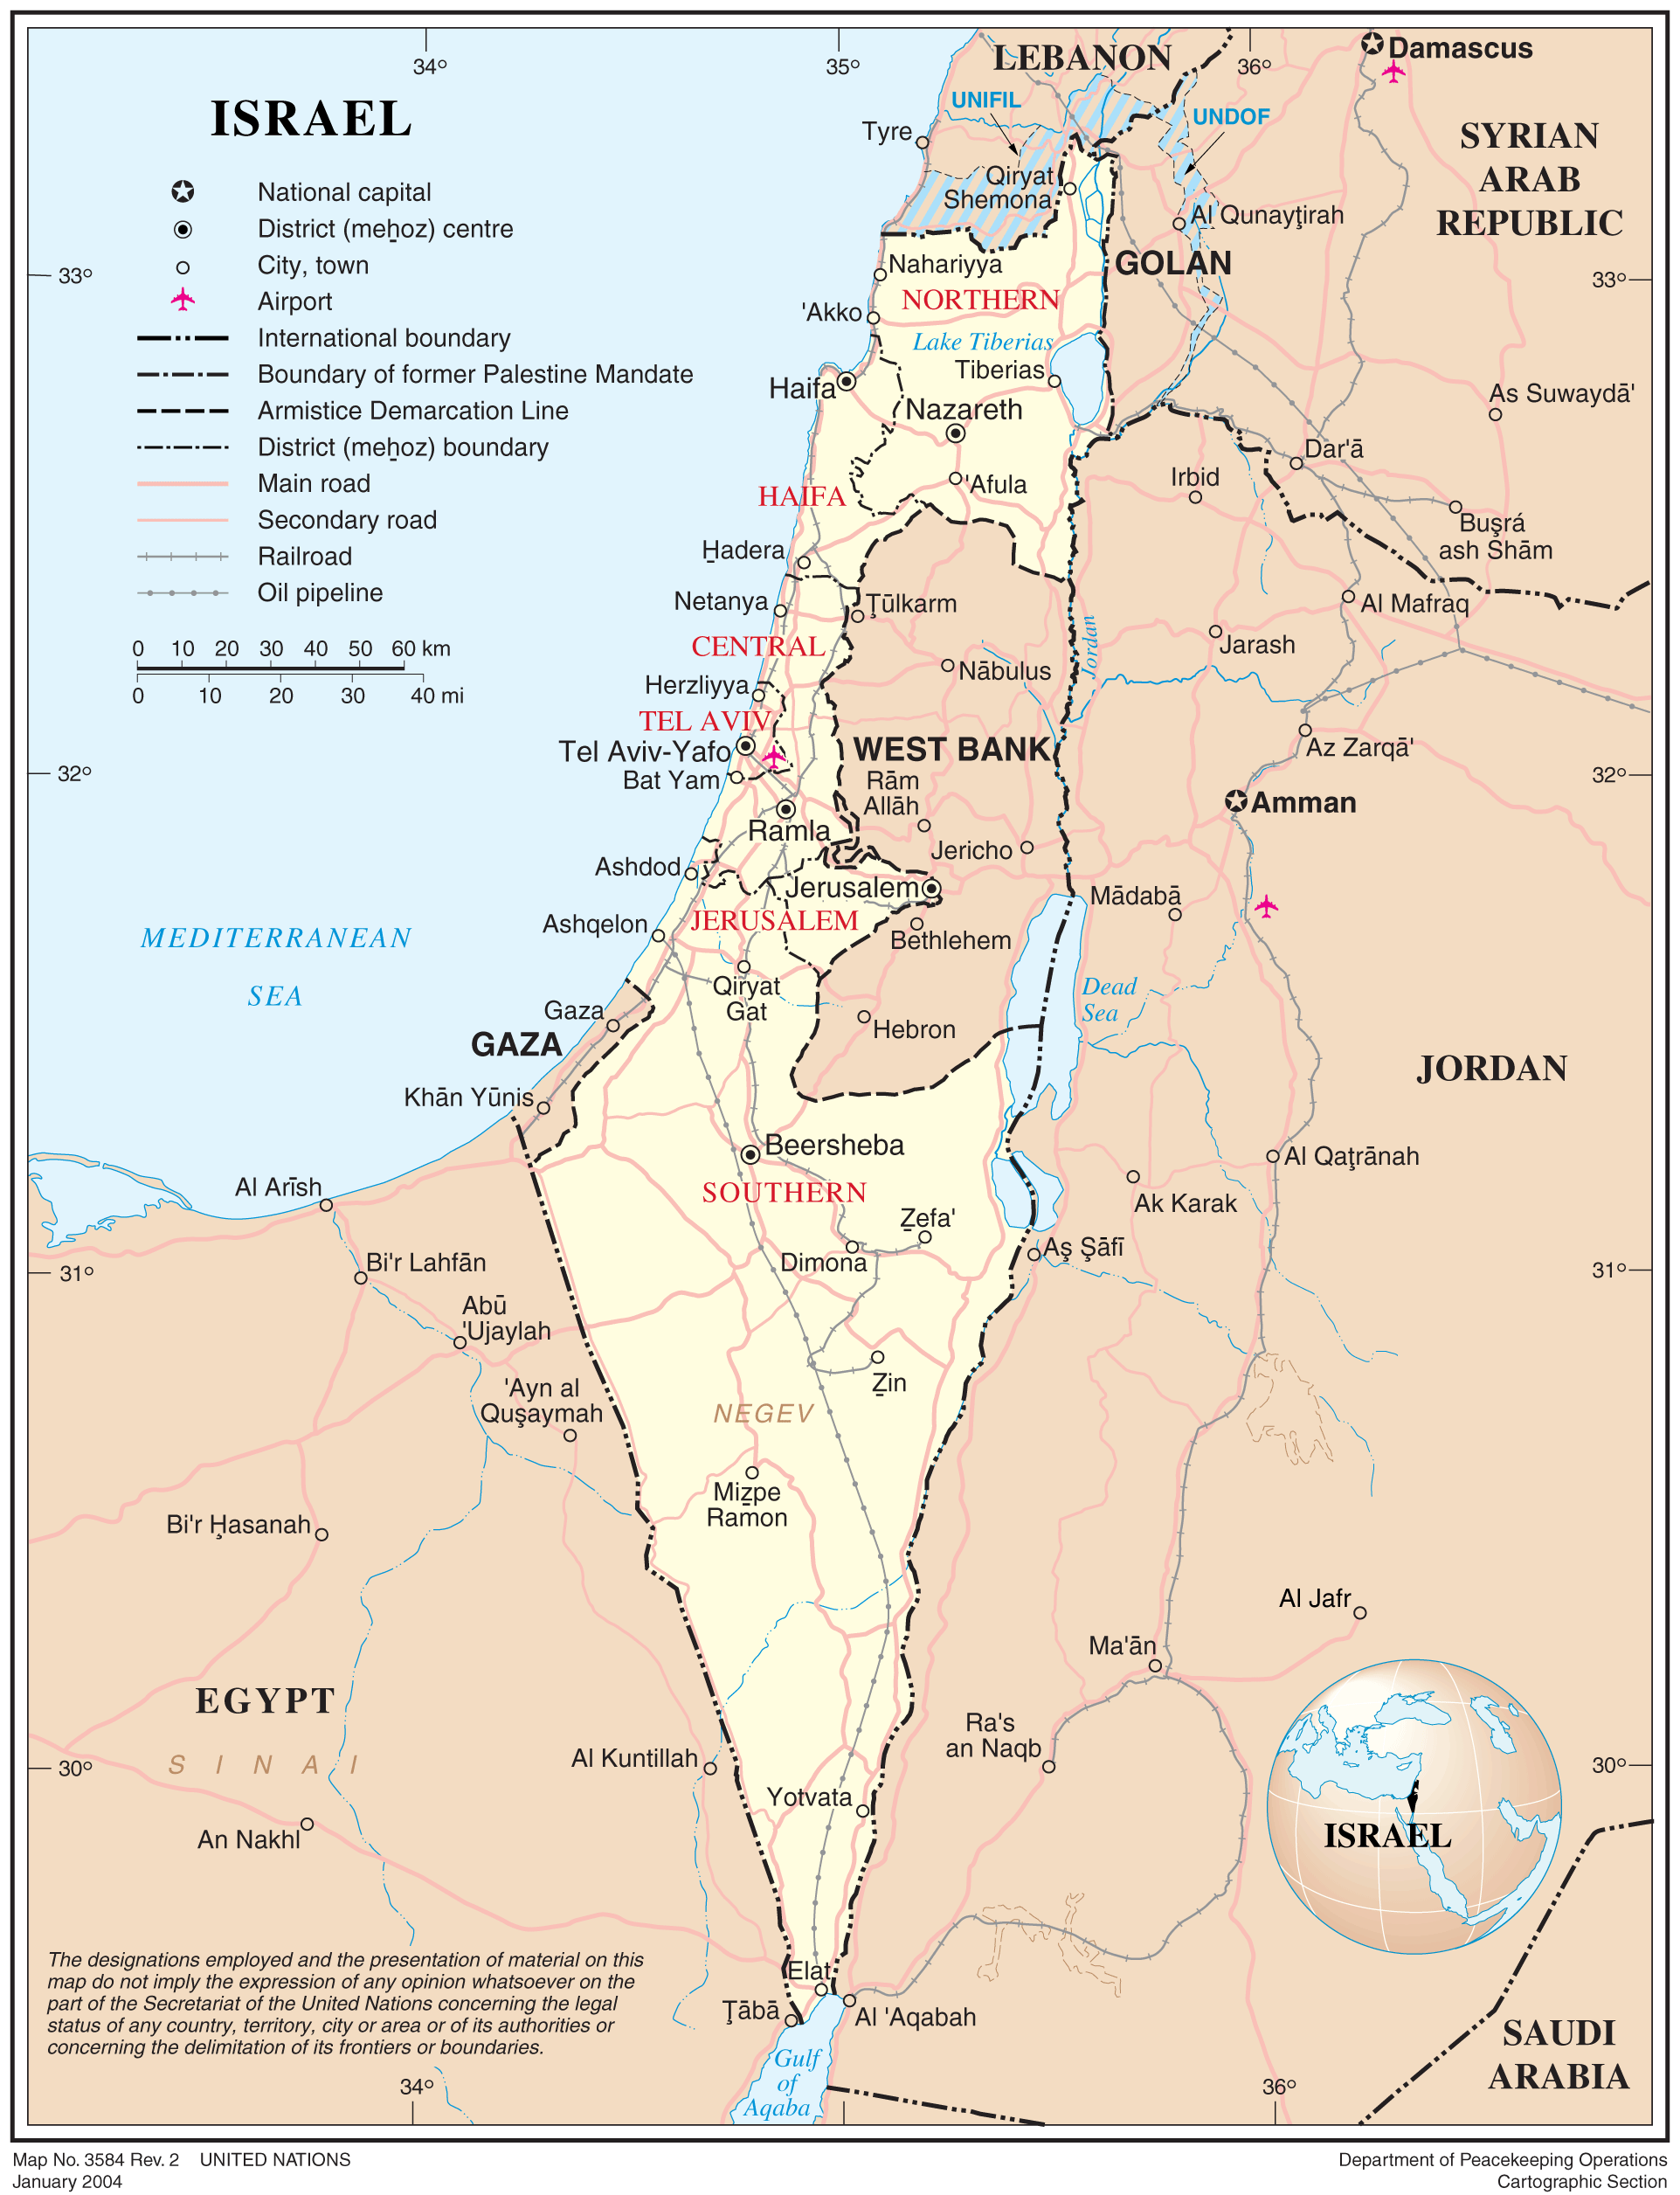 Maps of Israel - Geography Realm Printable Map Of Israel Today on biblical israel vs israel today, news in israel today, detailed map of israel today, physical israel map today, printable map of western europe, geography of israel today, modern maps of israel today, israel map as of today, printable map of southeast asia, large map of israel today, printable map of romania, israel boundaries today, israel vs judah today, religions in israel today, interactive map of israel today, printable new testament israel map, israel 1948 and today, map of ancient israel today, printable map of san bernardino county, map of middle east today,